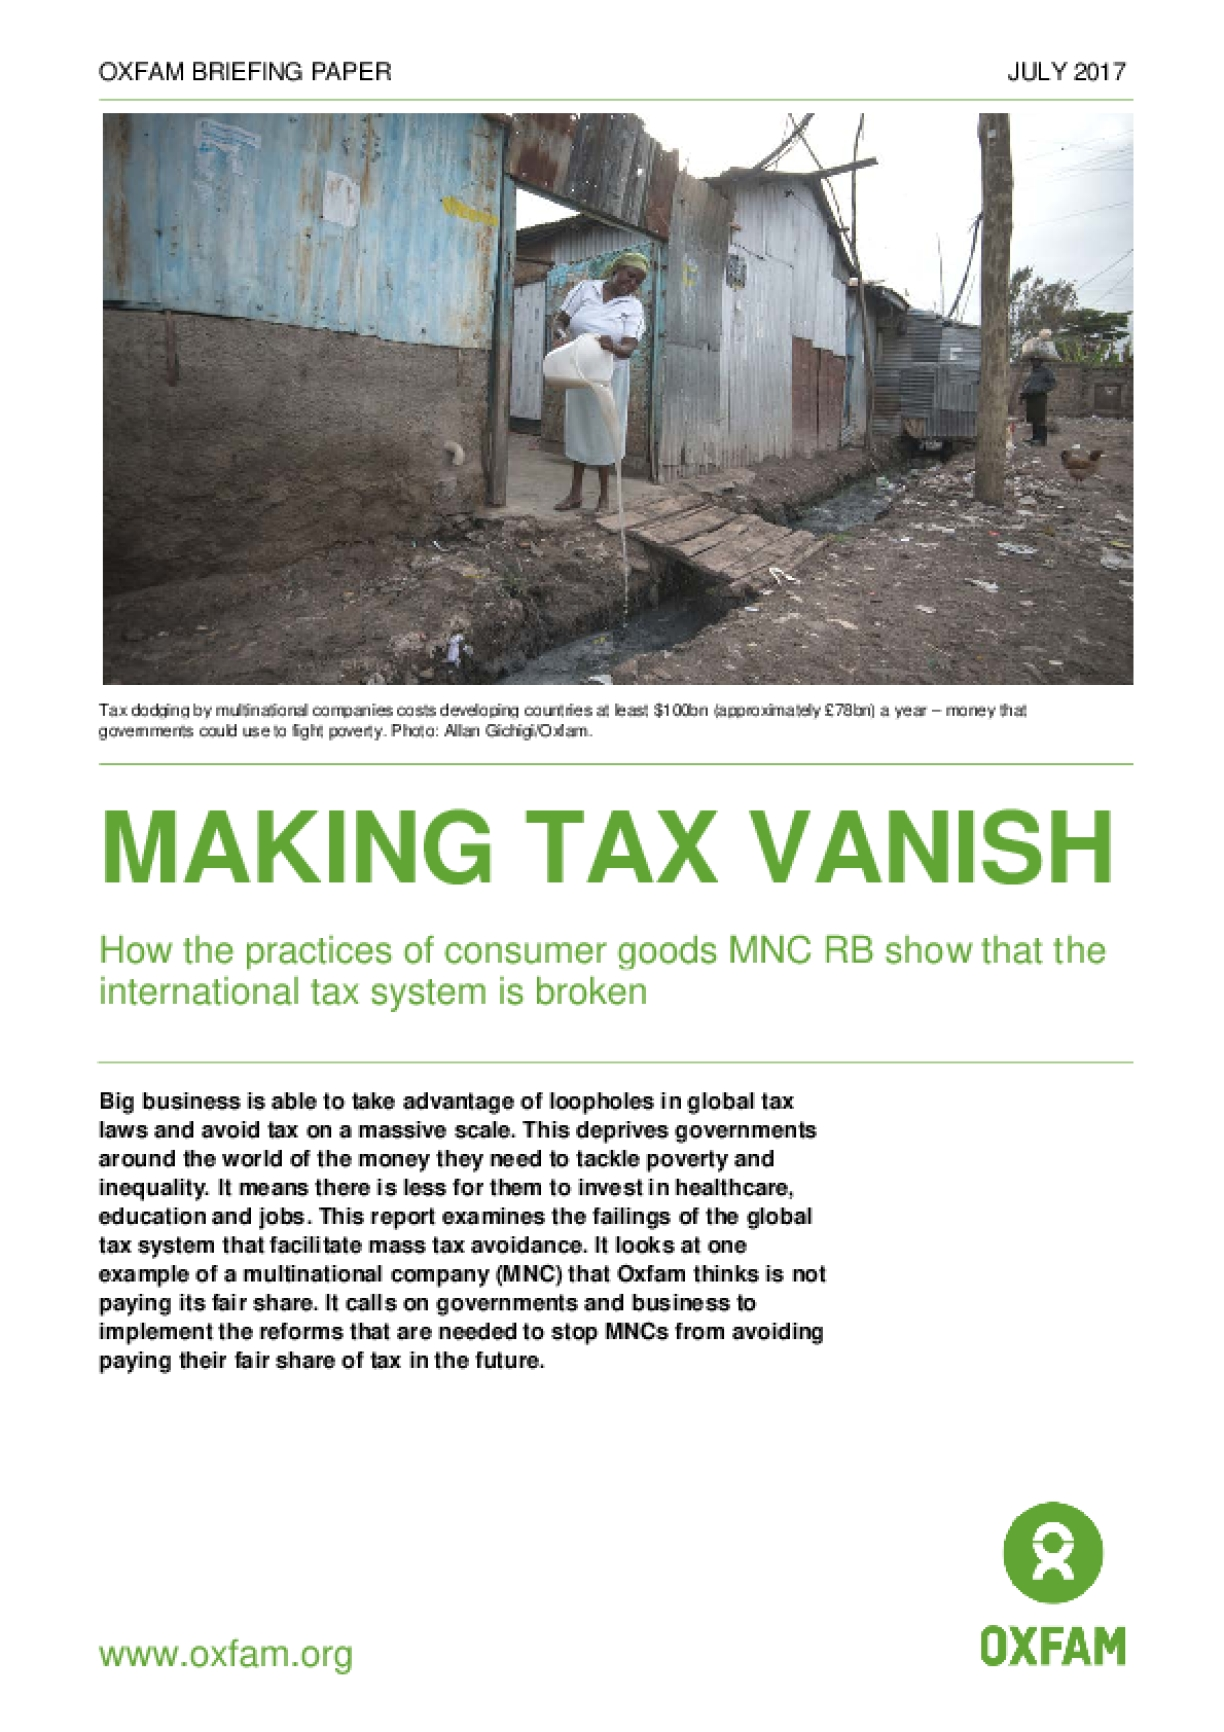 Making Tax Vanish: How the Practices of Consumer Goods MNC RB Show That the International Tax System Is Broken